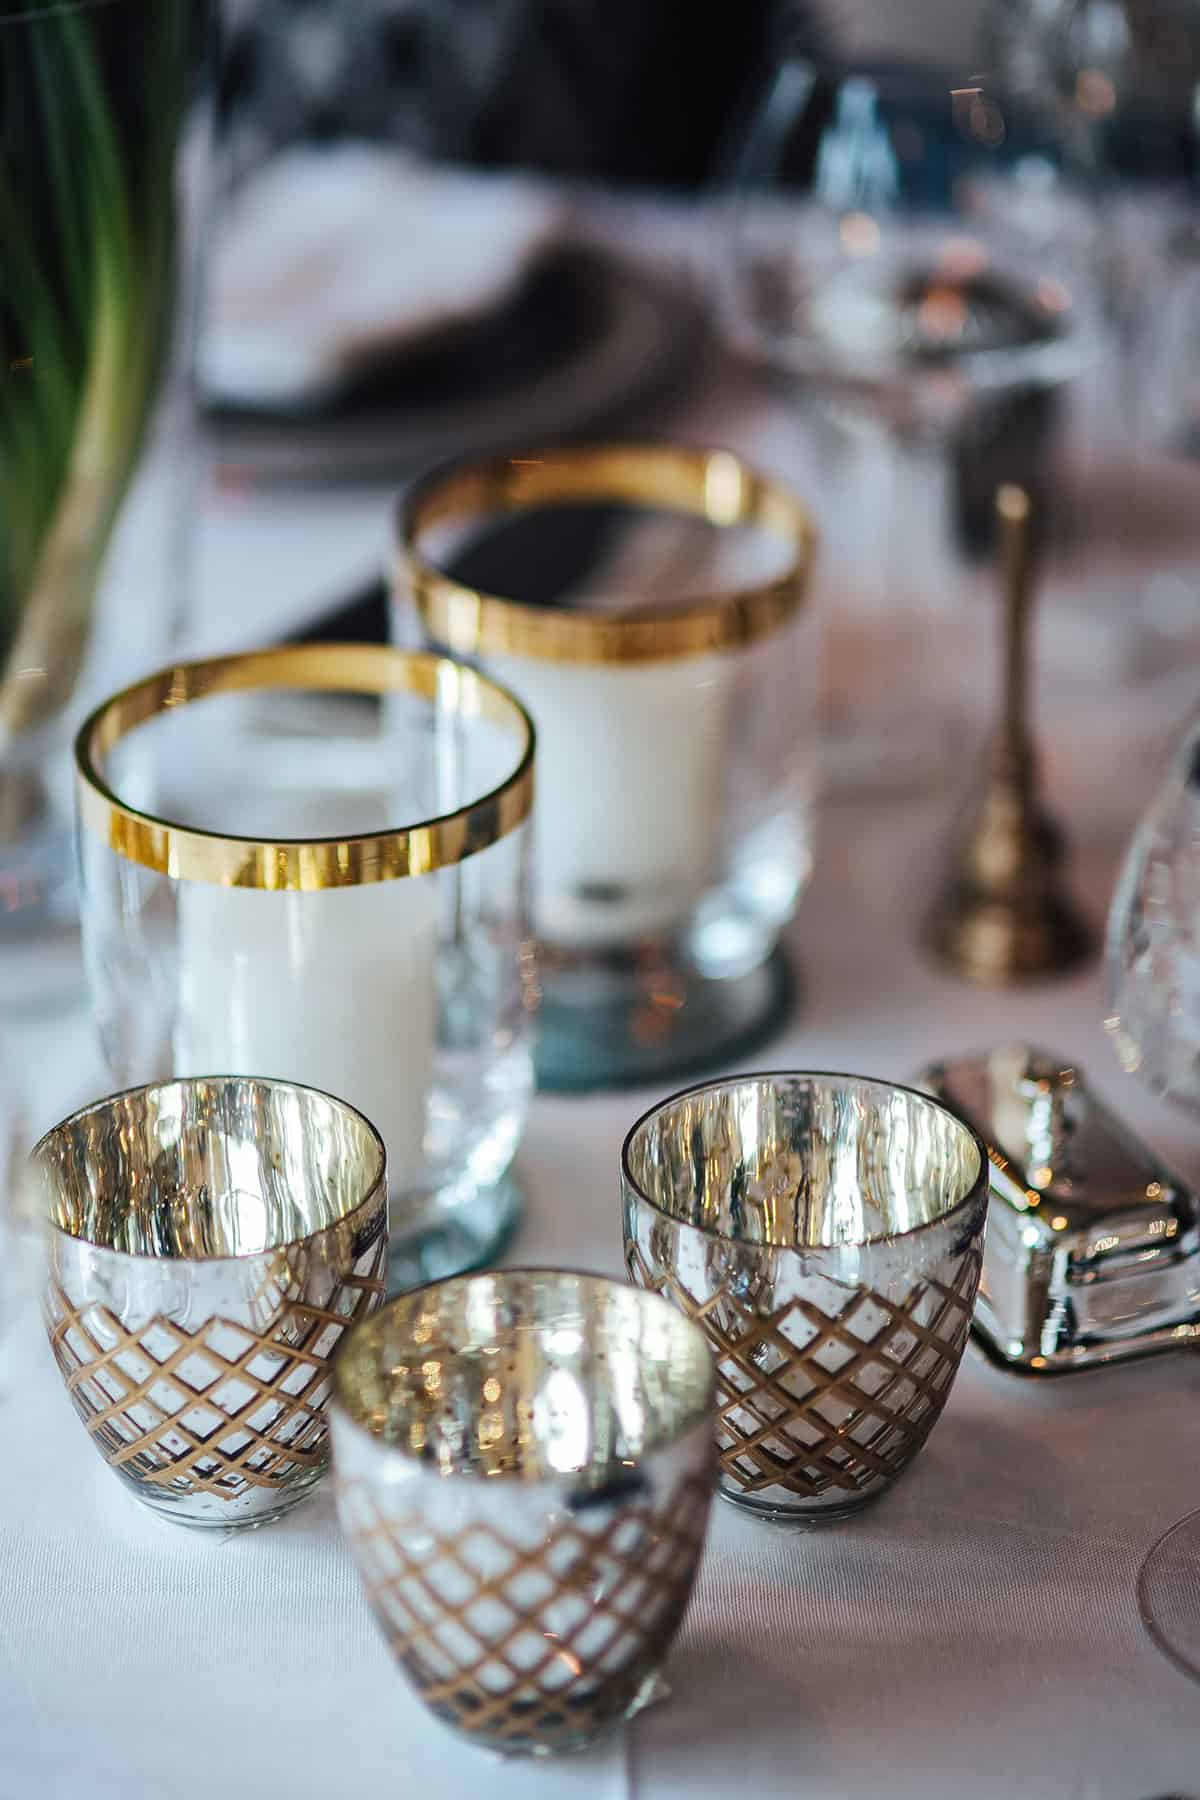 Host a hygge dinner party with friends